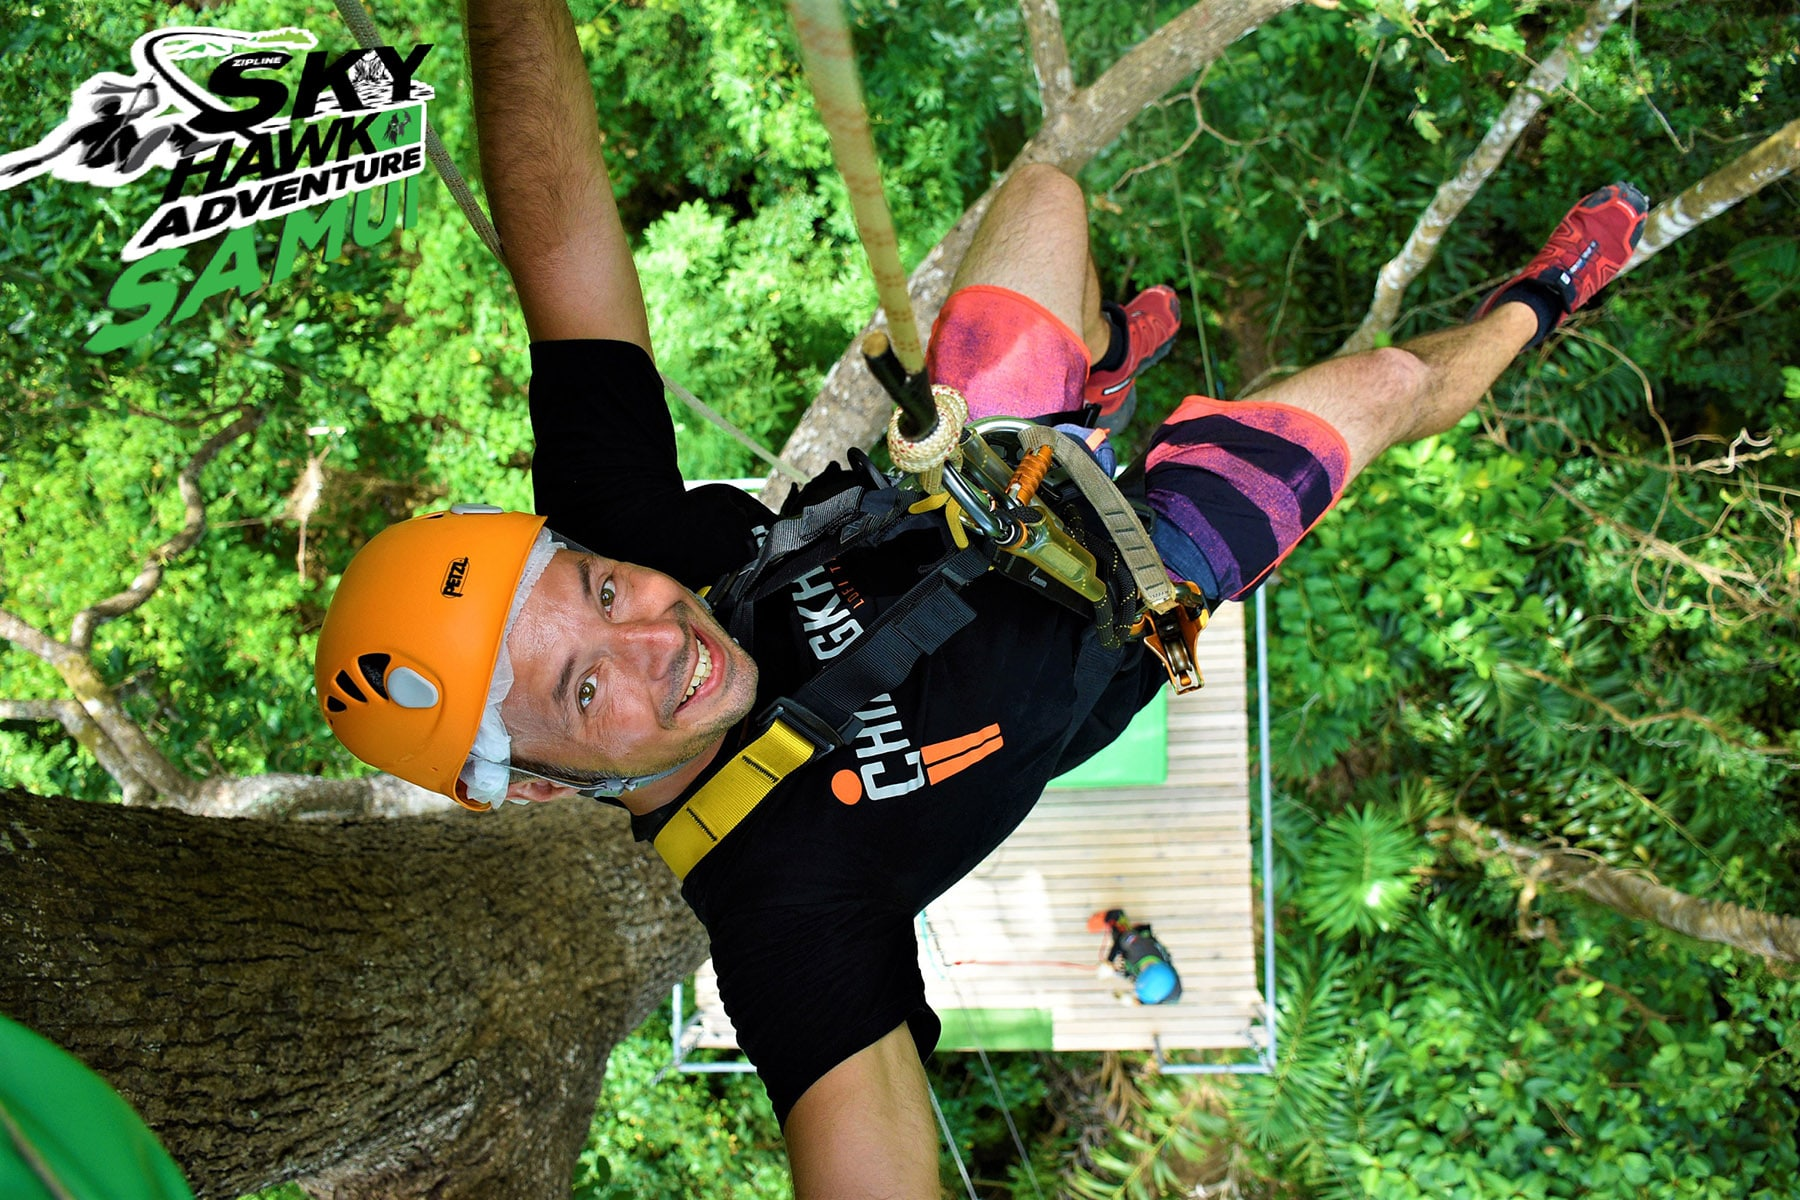 Zip Line Adventure Sky Hawk Samui Cable ride